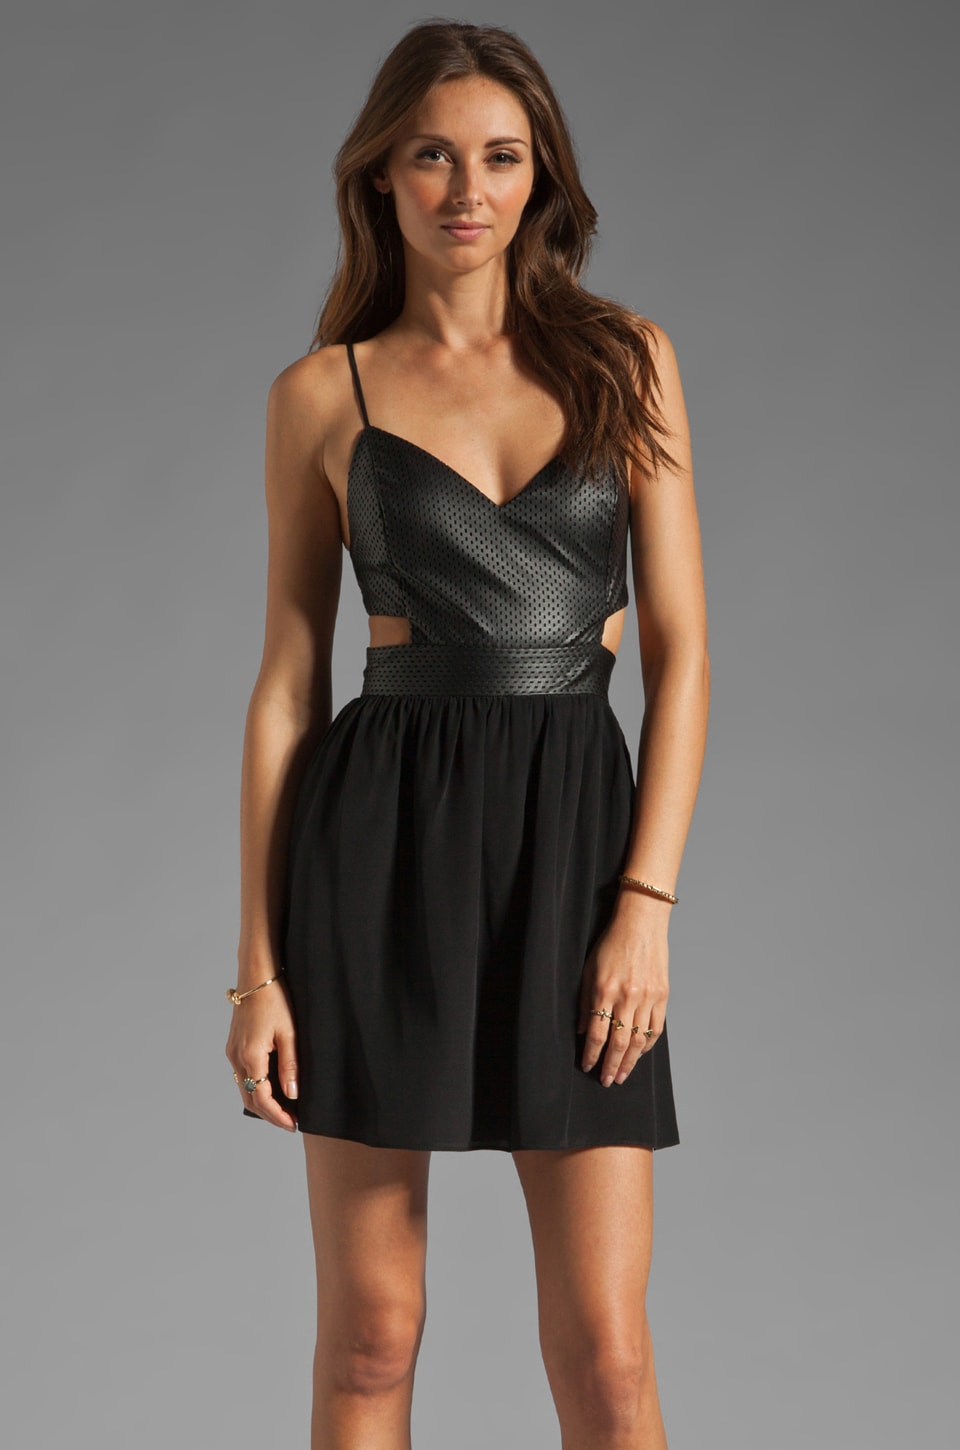 Rory Beca Cherry Cut Out Dress in Onyx